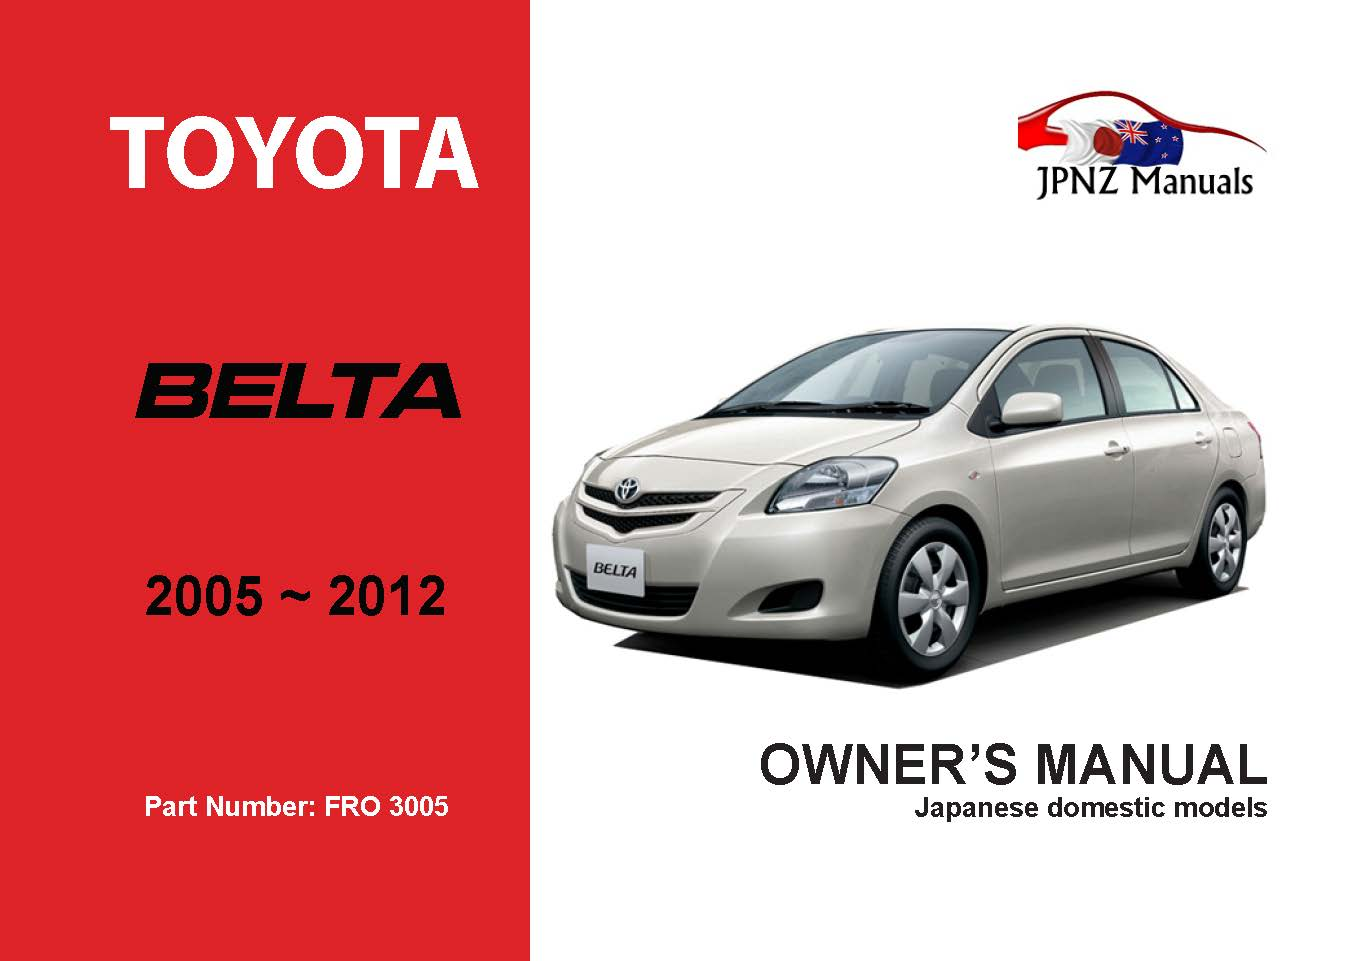 Toyota - Belta Owner's User Manual In English   2005 - 2012